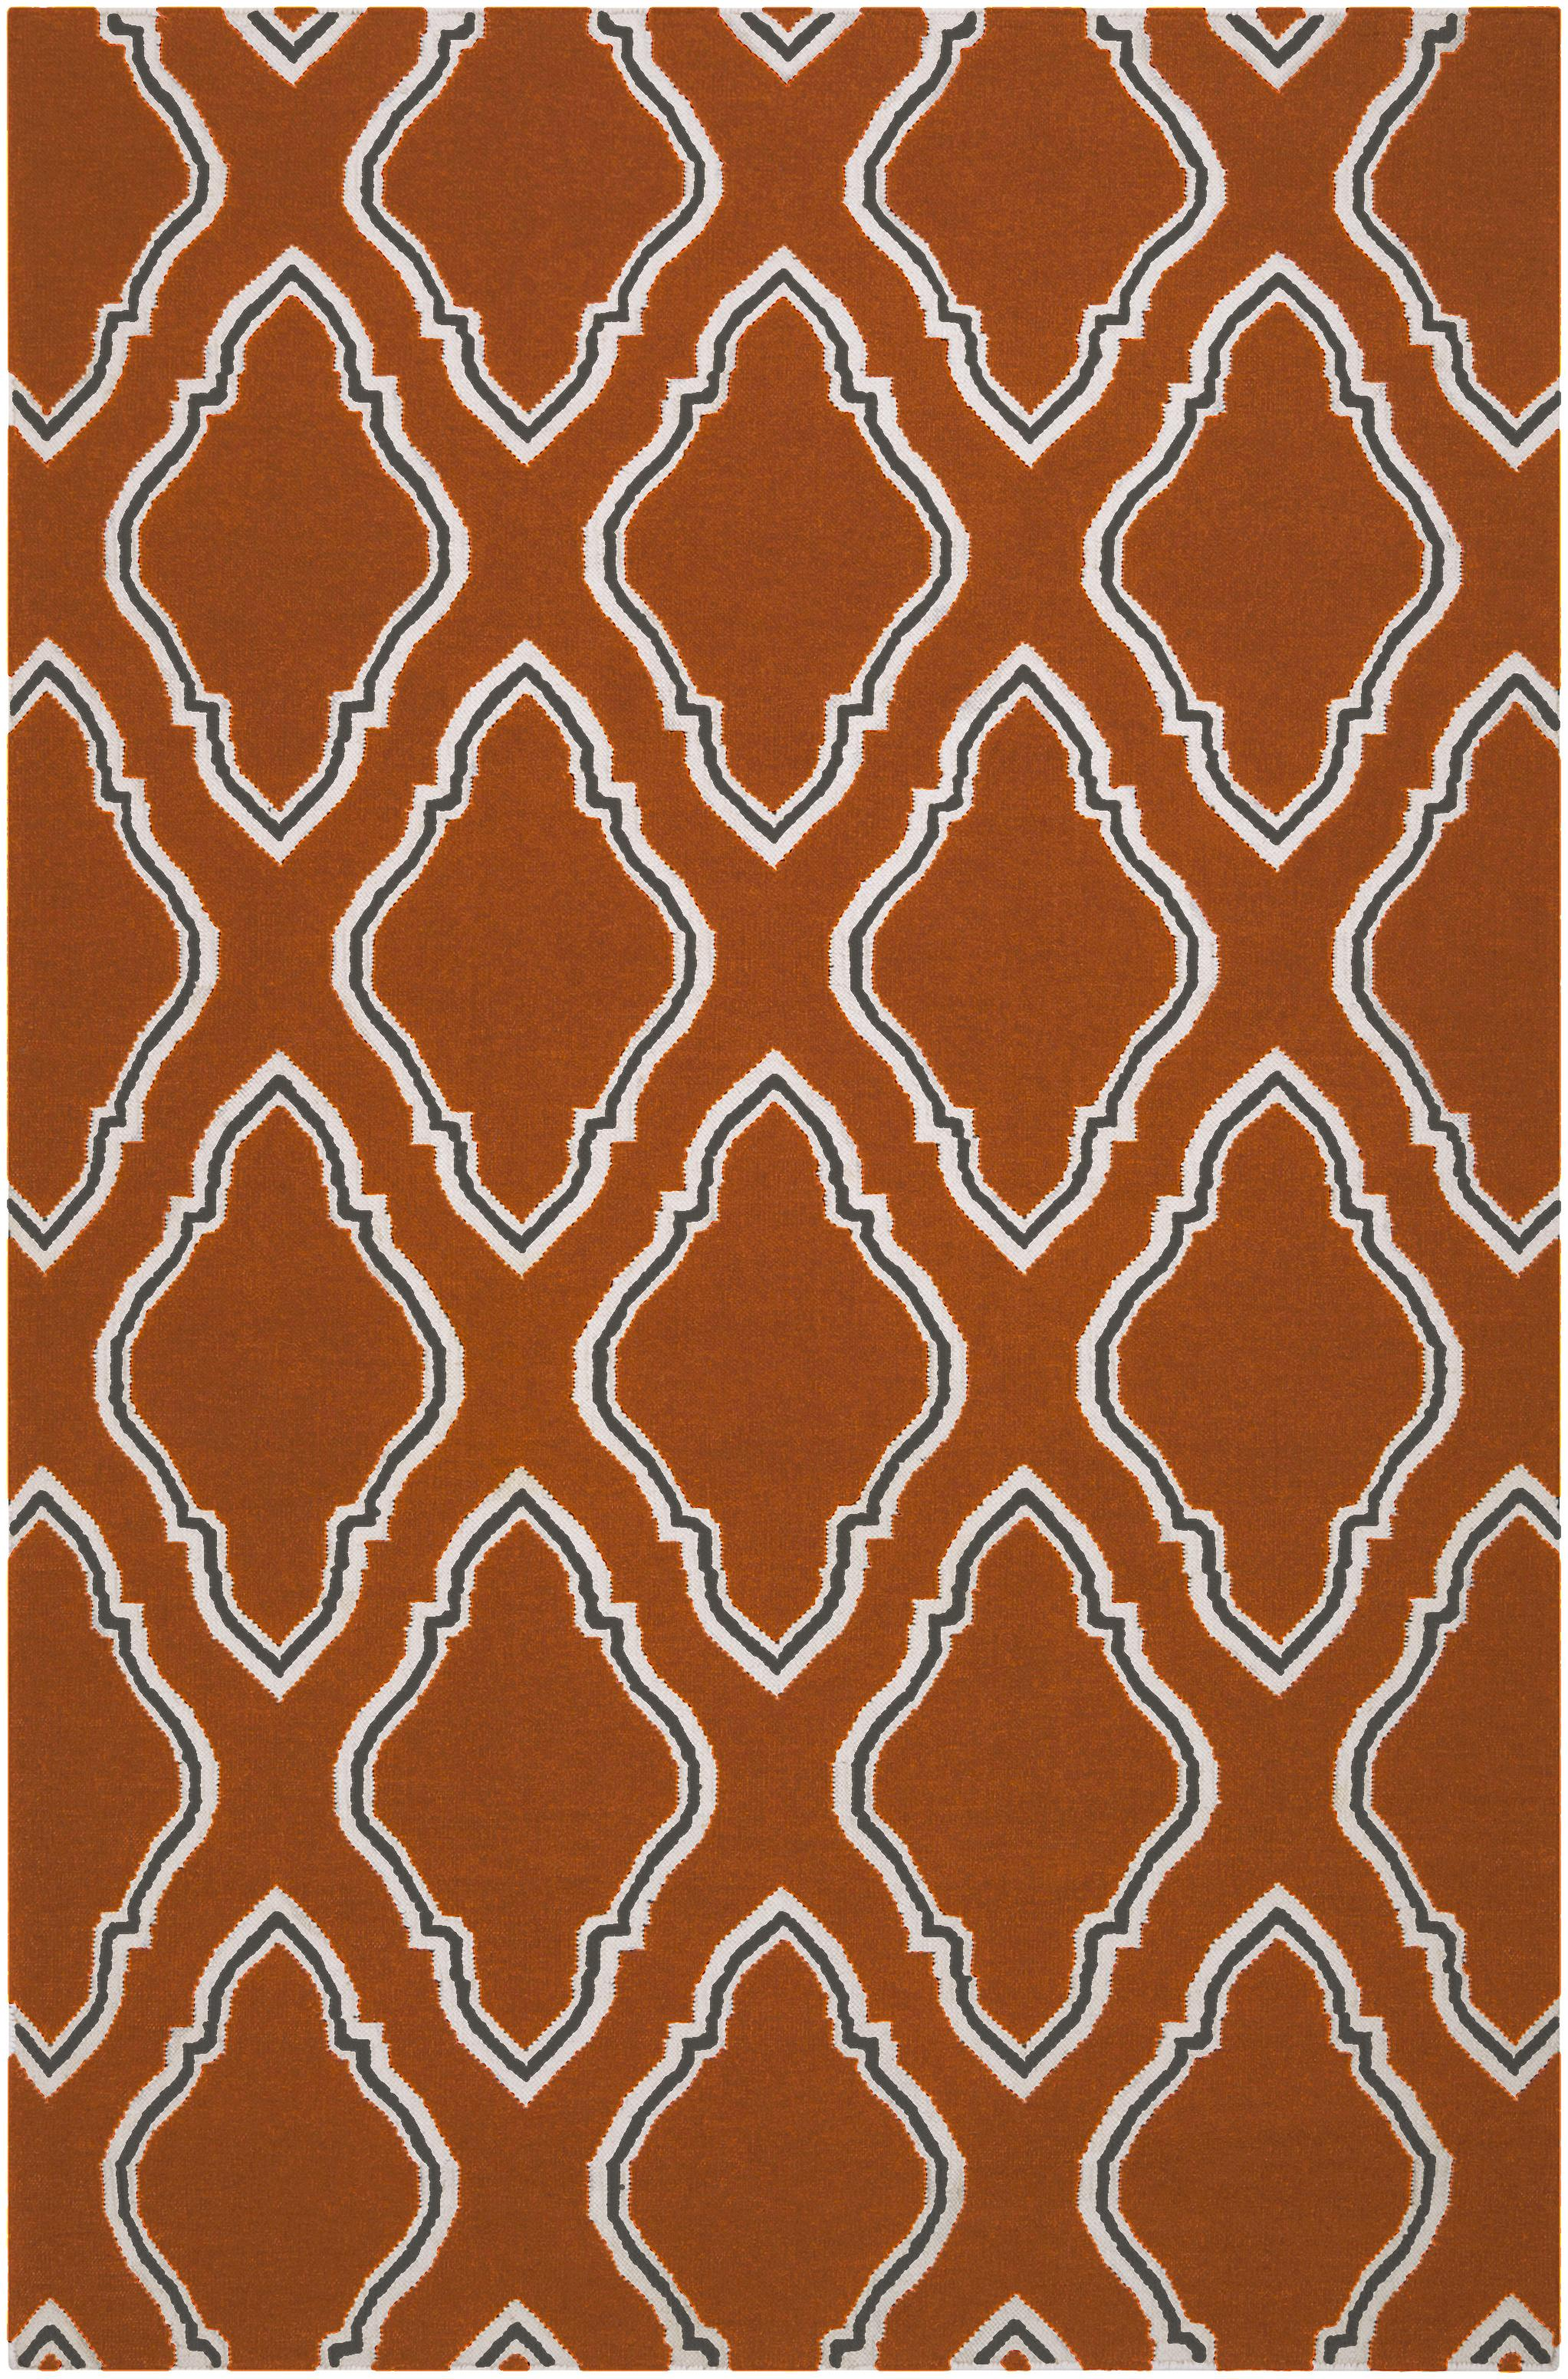 Surya Rugs Fallon 2' x 3' - Item Number: FAL1098-23